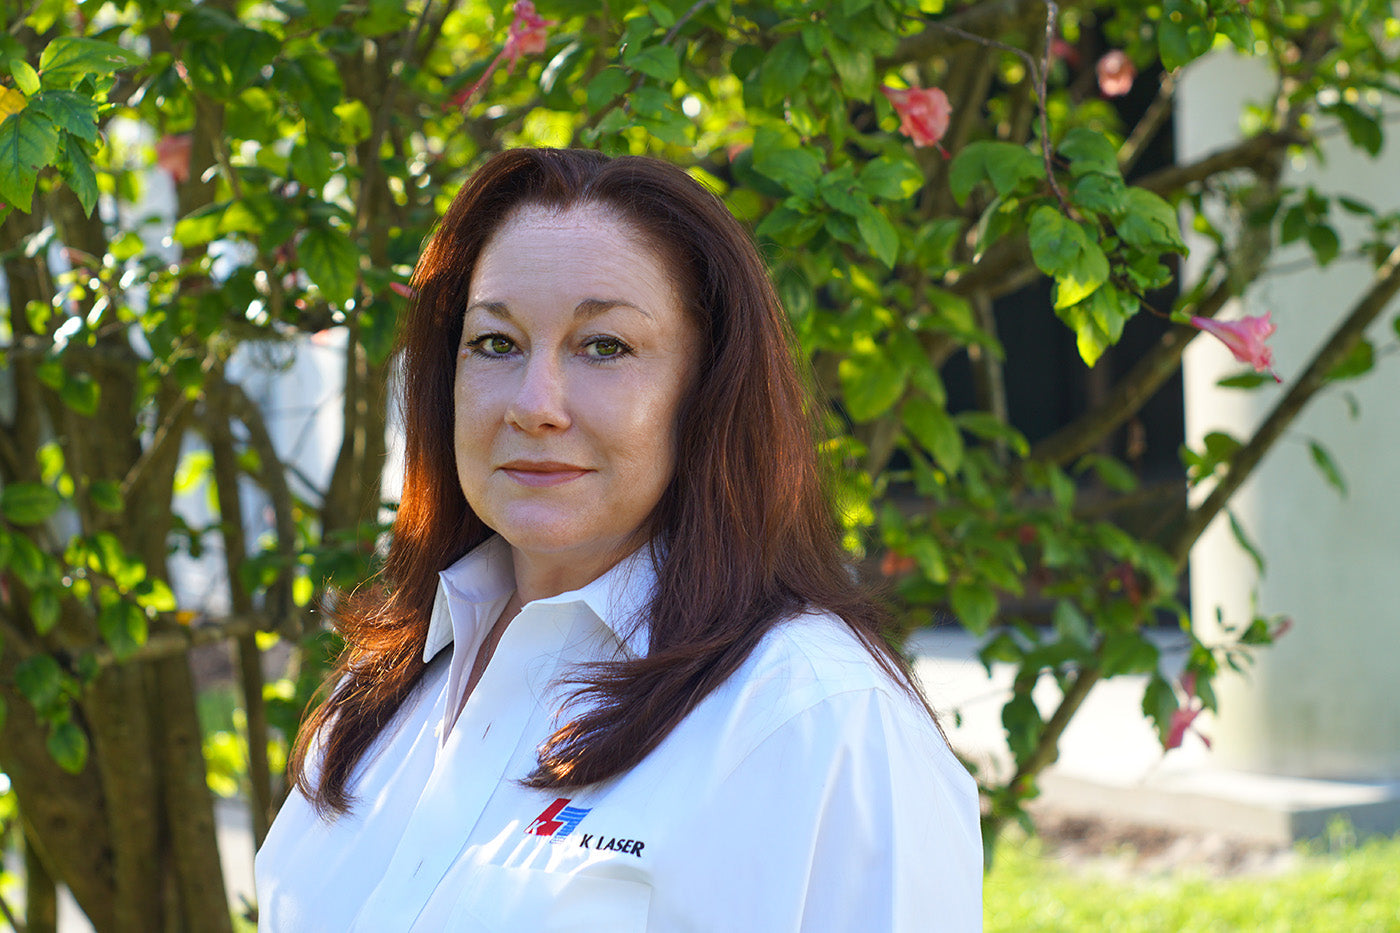 K Laser Cold Foil Business Unit Welcomes Margaret Apolito to the Sales Support Team